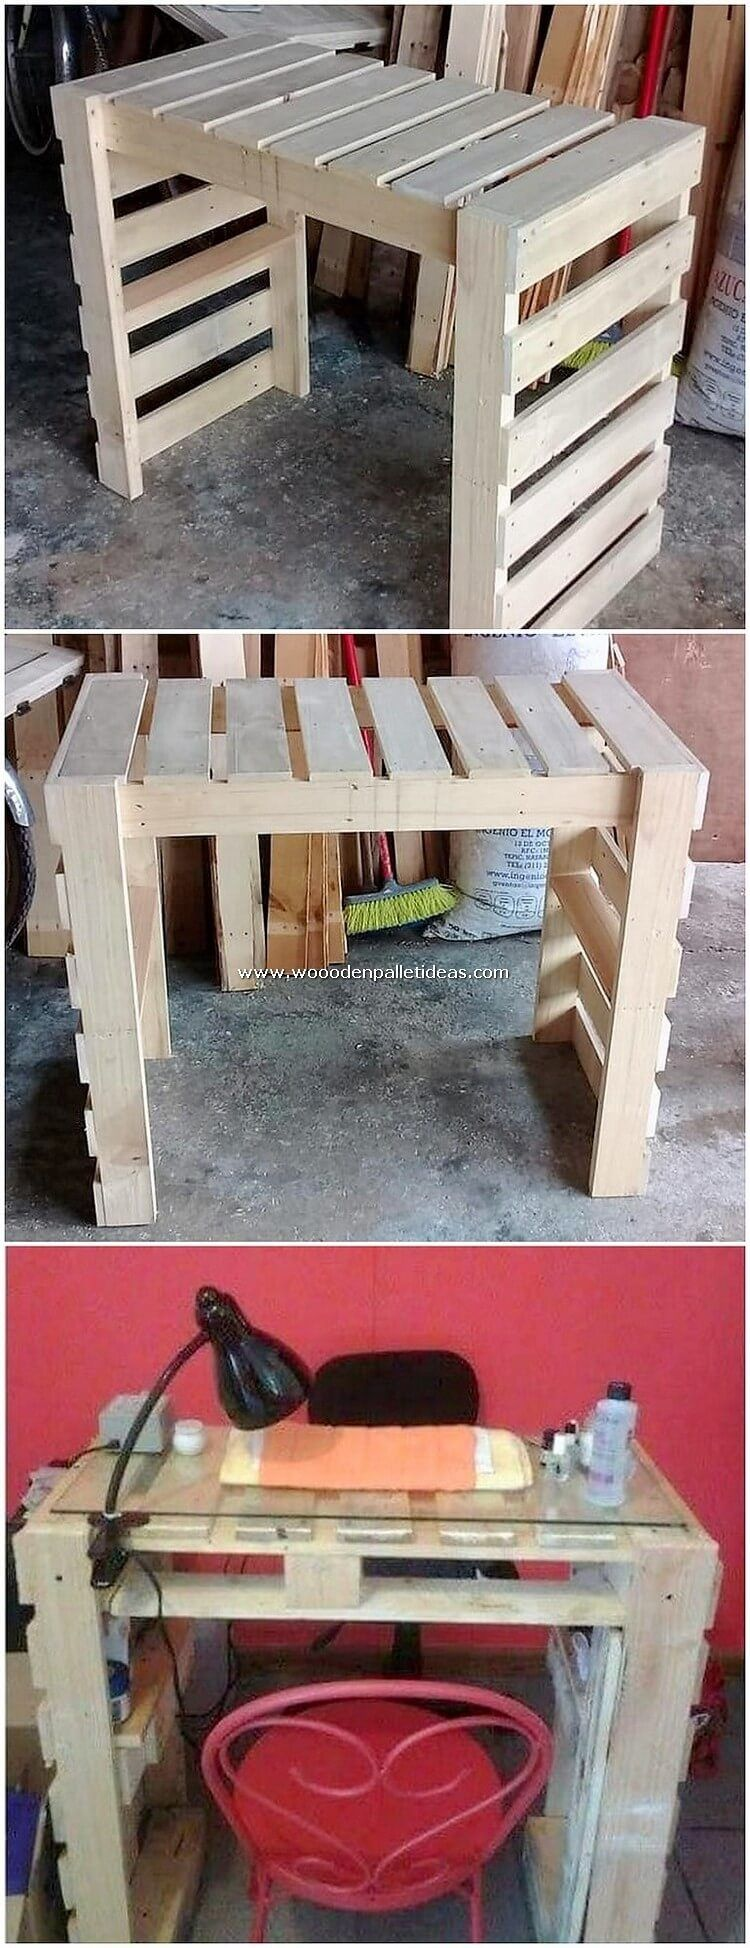 This Is Yet Another Thrilling Designed Wood Pallet Desk Layout That Has Been So Exceptional Designed Out Wit Wood Pallets Pallet Desk Pallet Projects Furniture